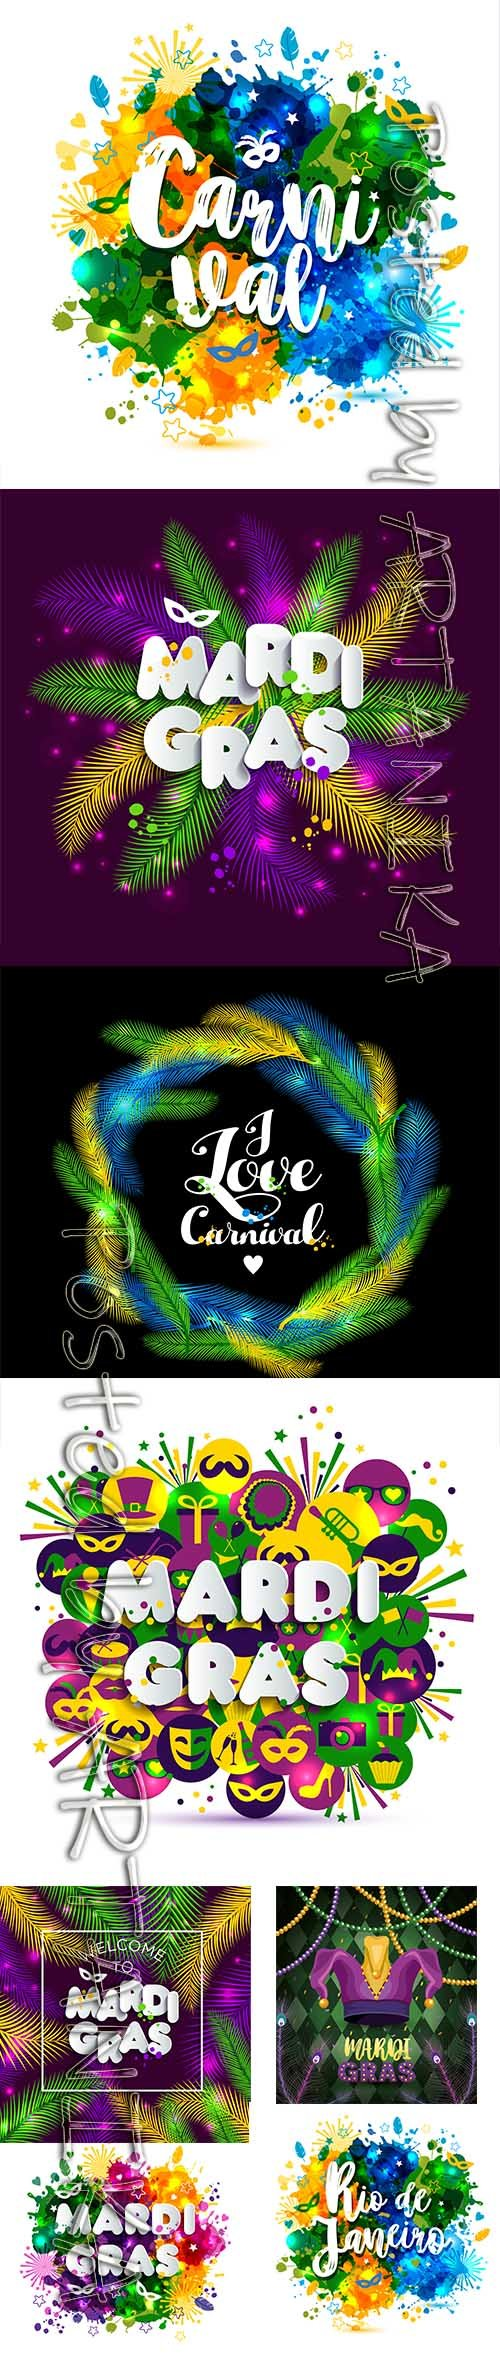 Mardi Gras Carnival Party Background Vector Pack Vol 6